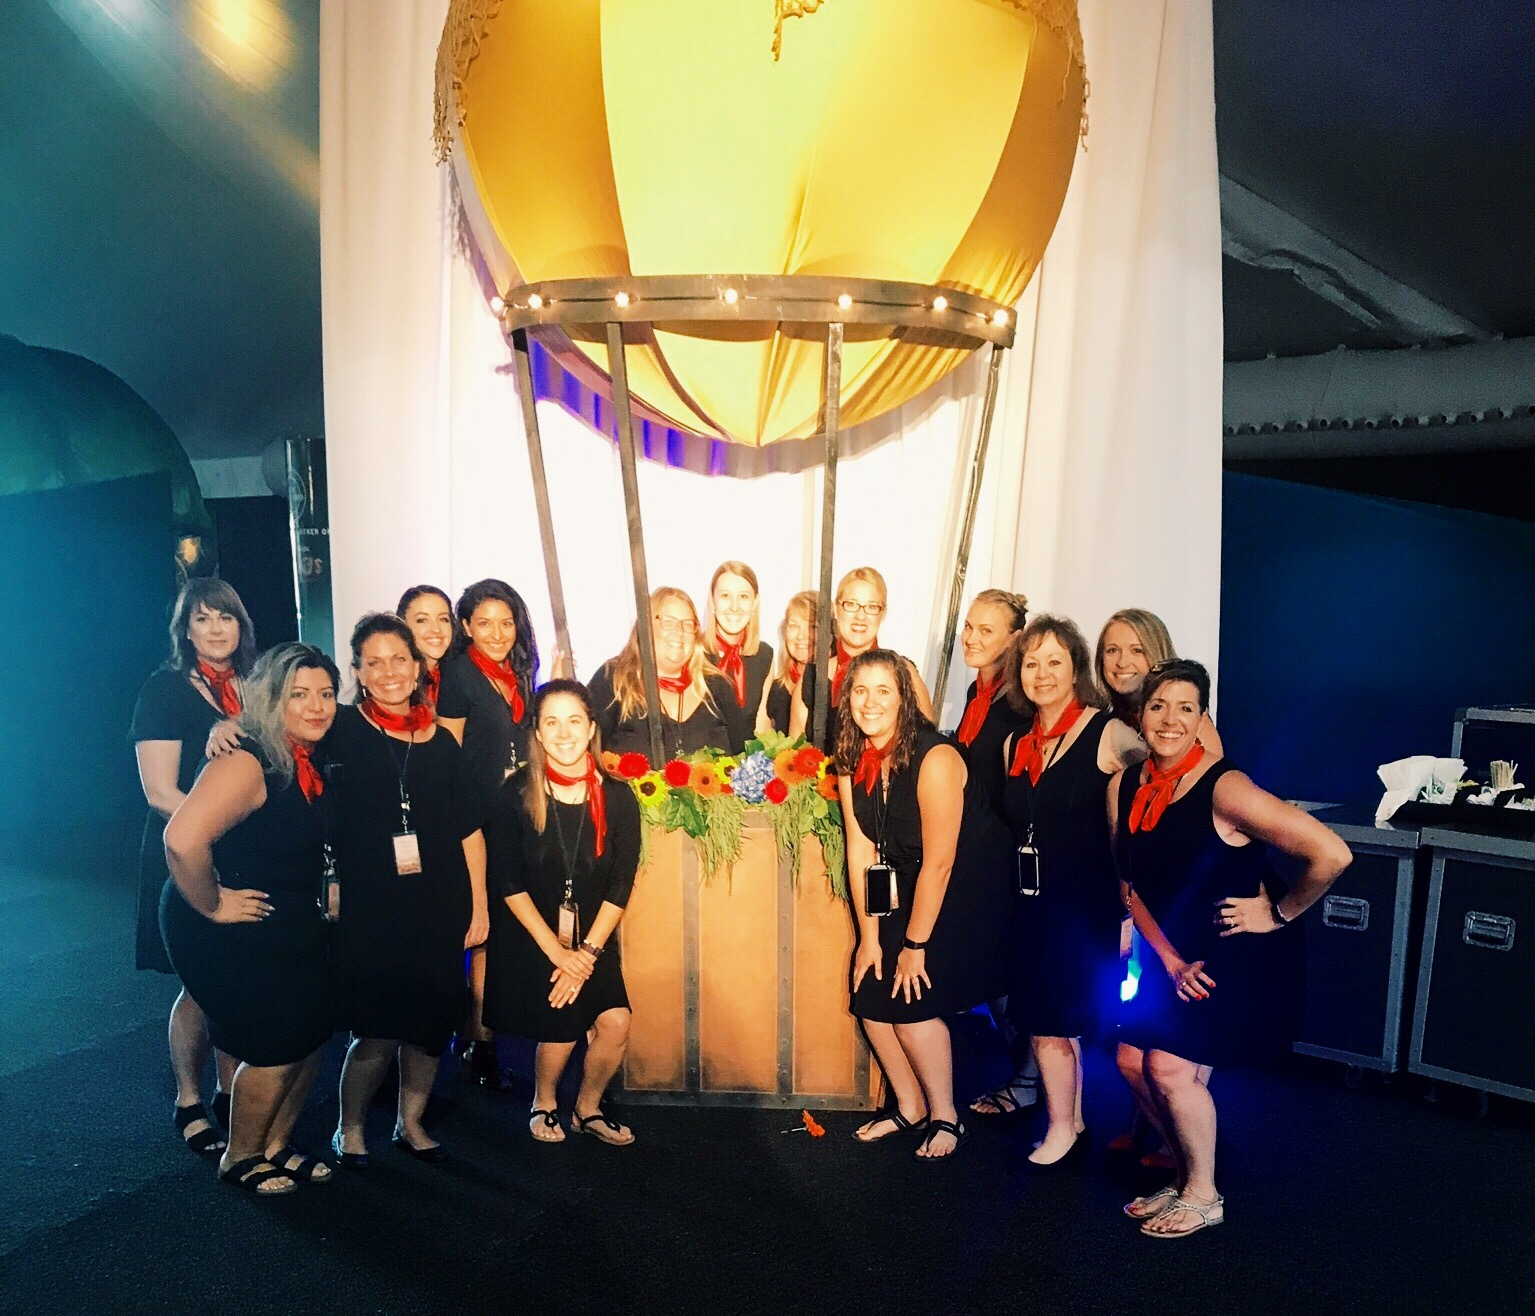 event planners with hot air balloon